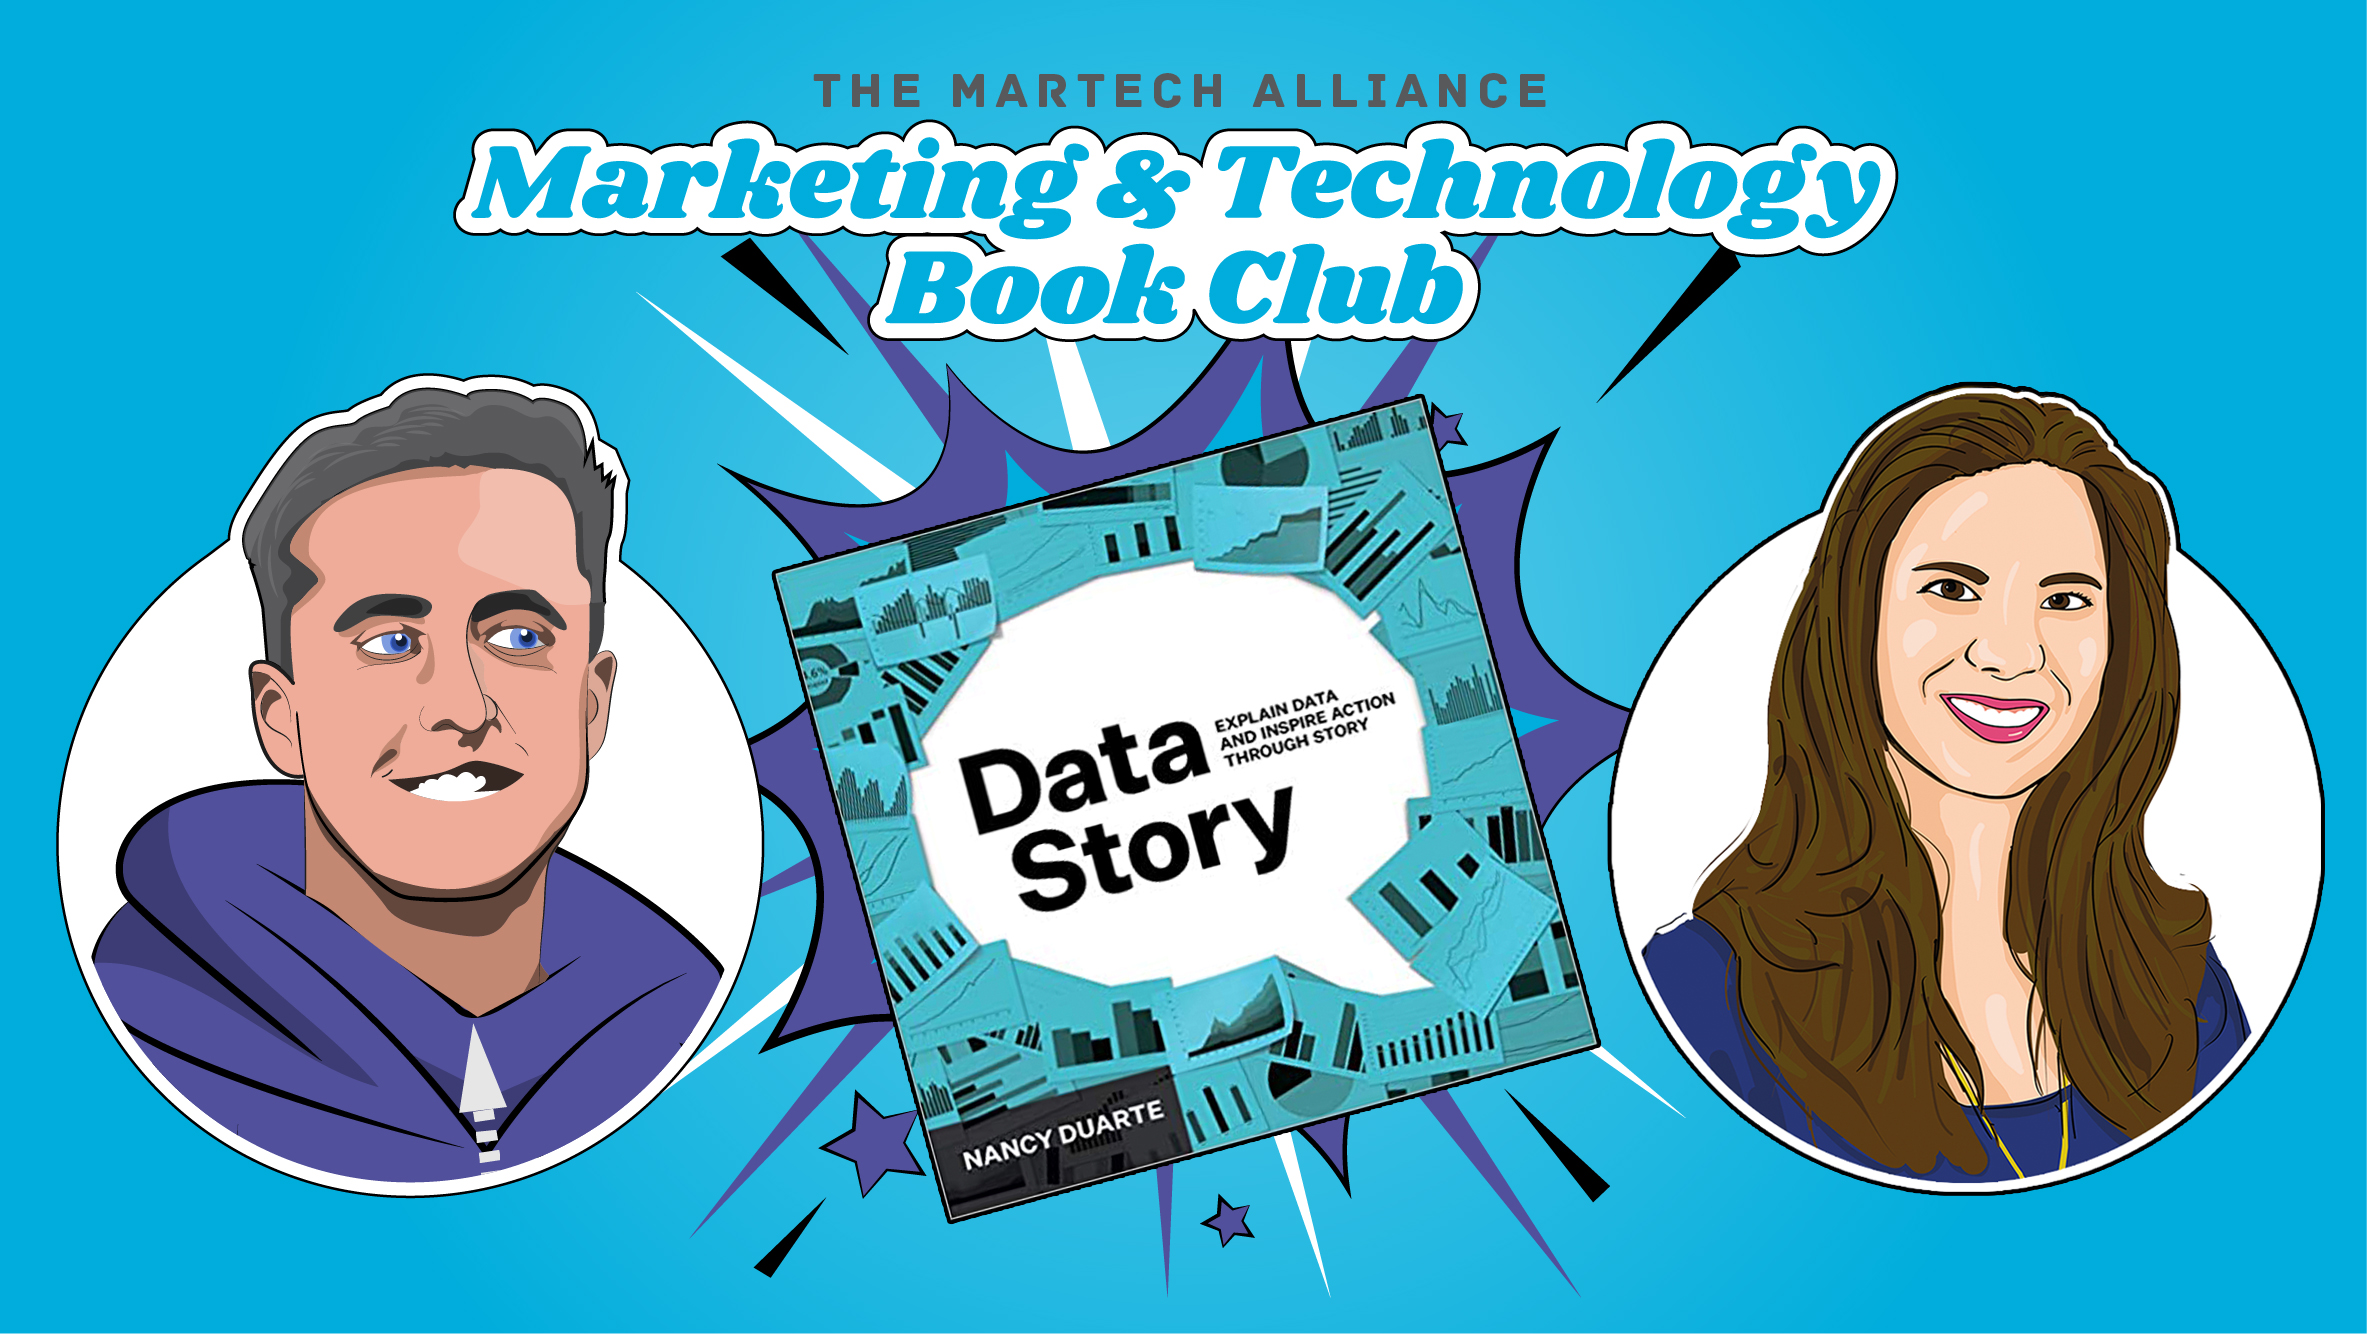 Marketing & Tech Book Club: DataStory by Nancy Duarte